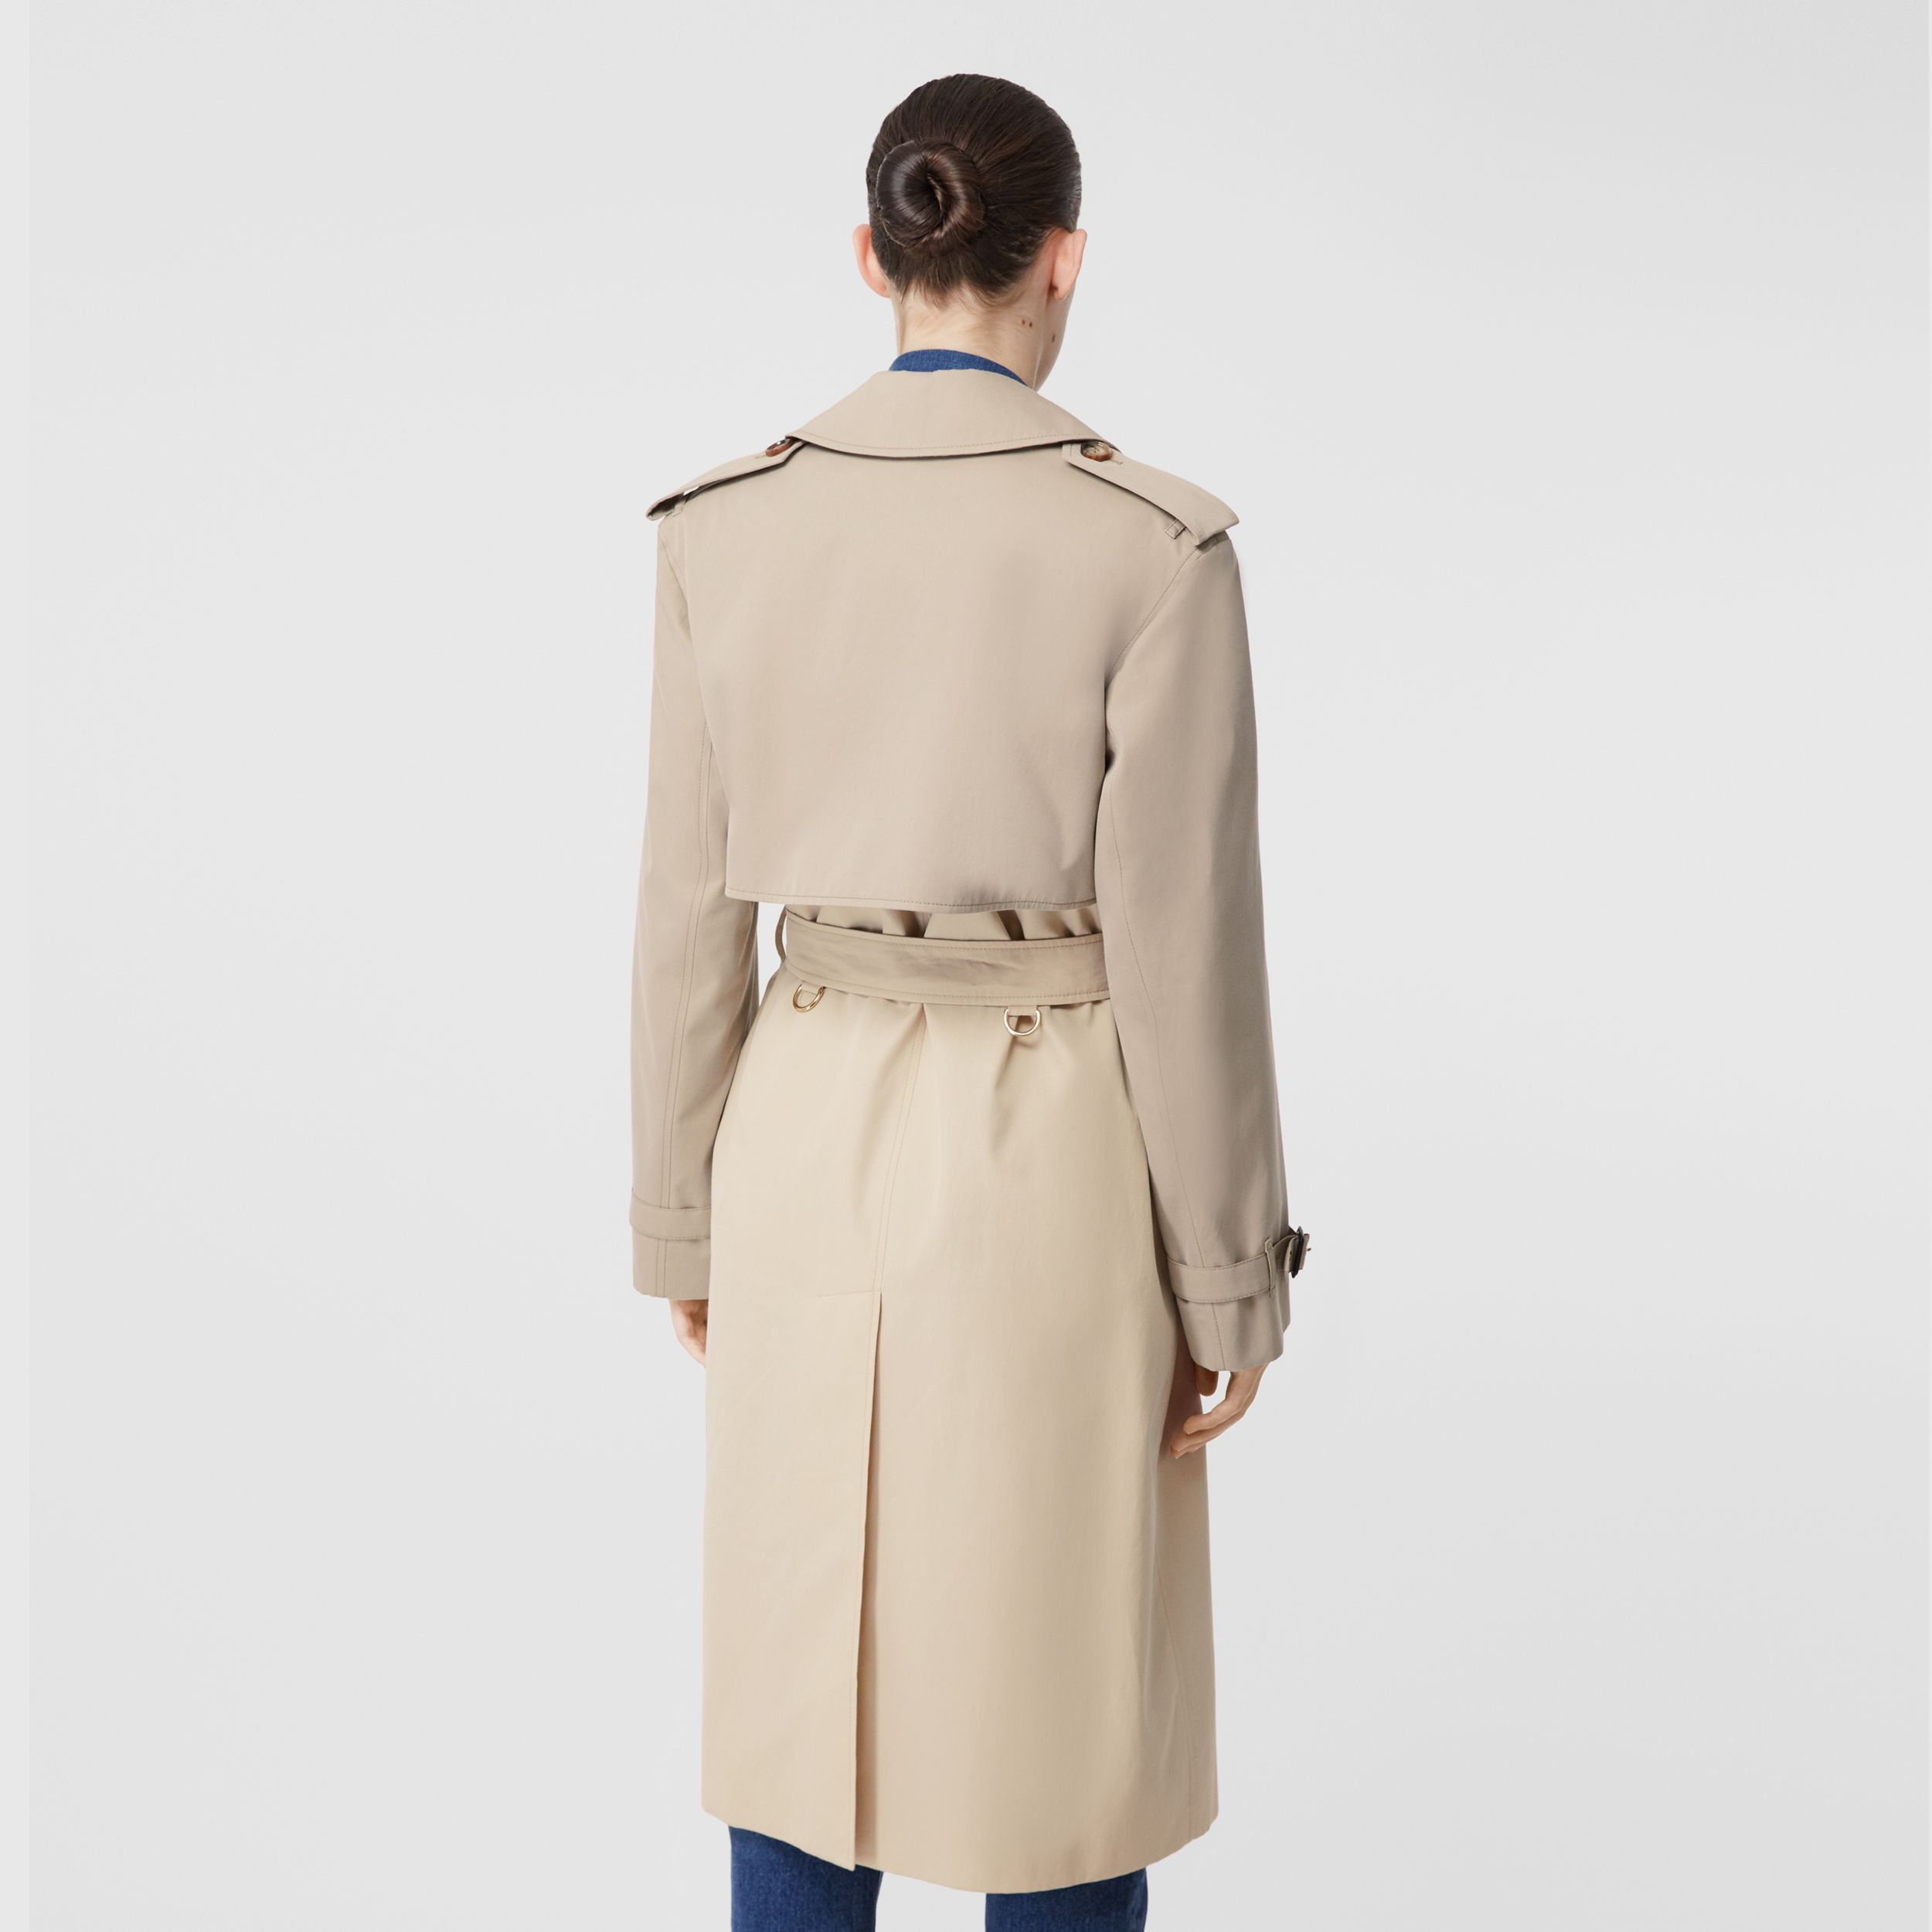 Two-tone Reconstructed Trench Coat in Light Sand - Women | Burberry - 3